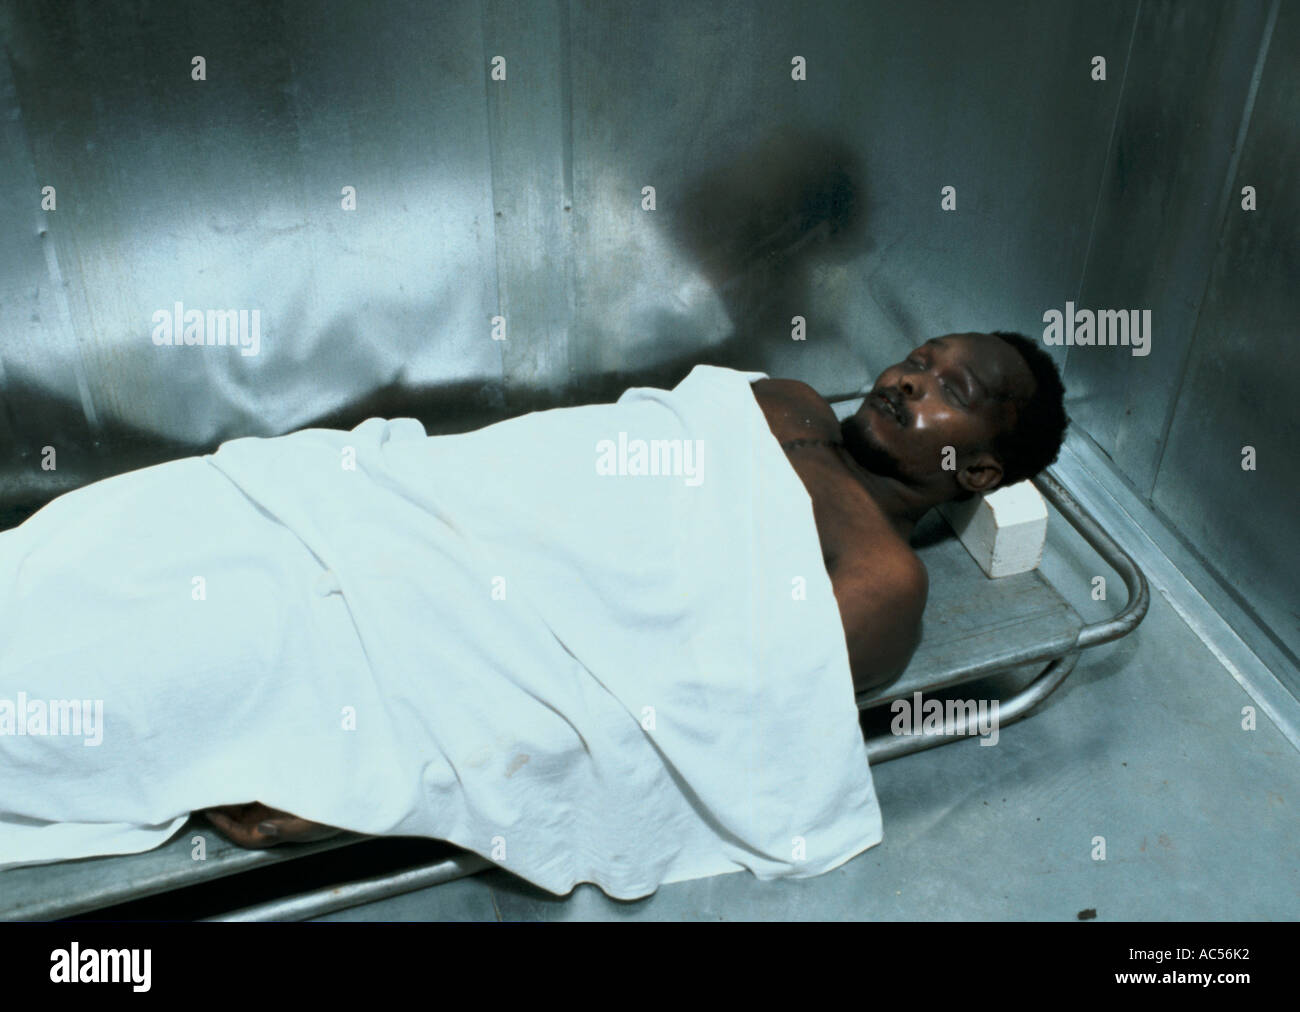 STEVE BIKO'S BODY IN THE GINSBERG SECTION OF KING WILLIAM'S TOWN 1977 Stock  Photo - Alamy